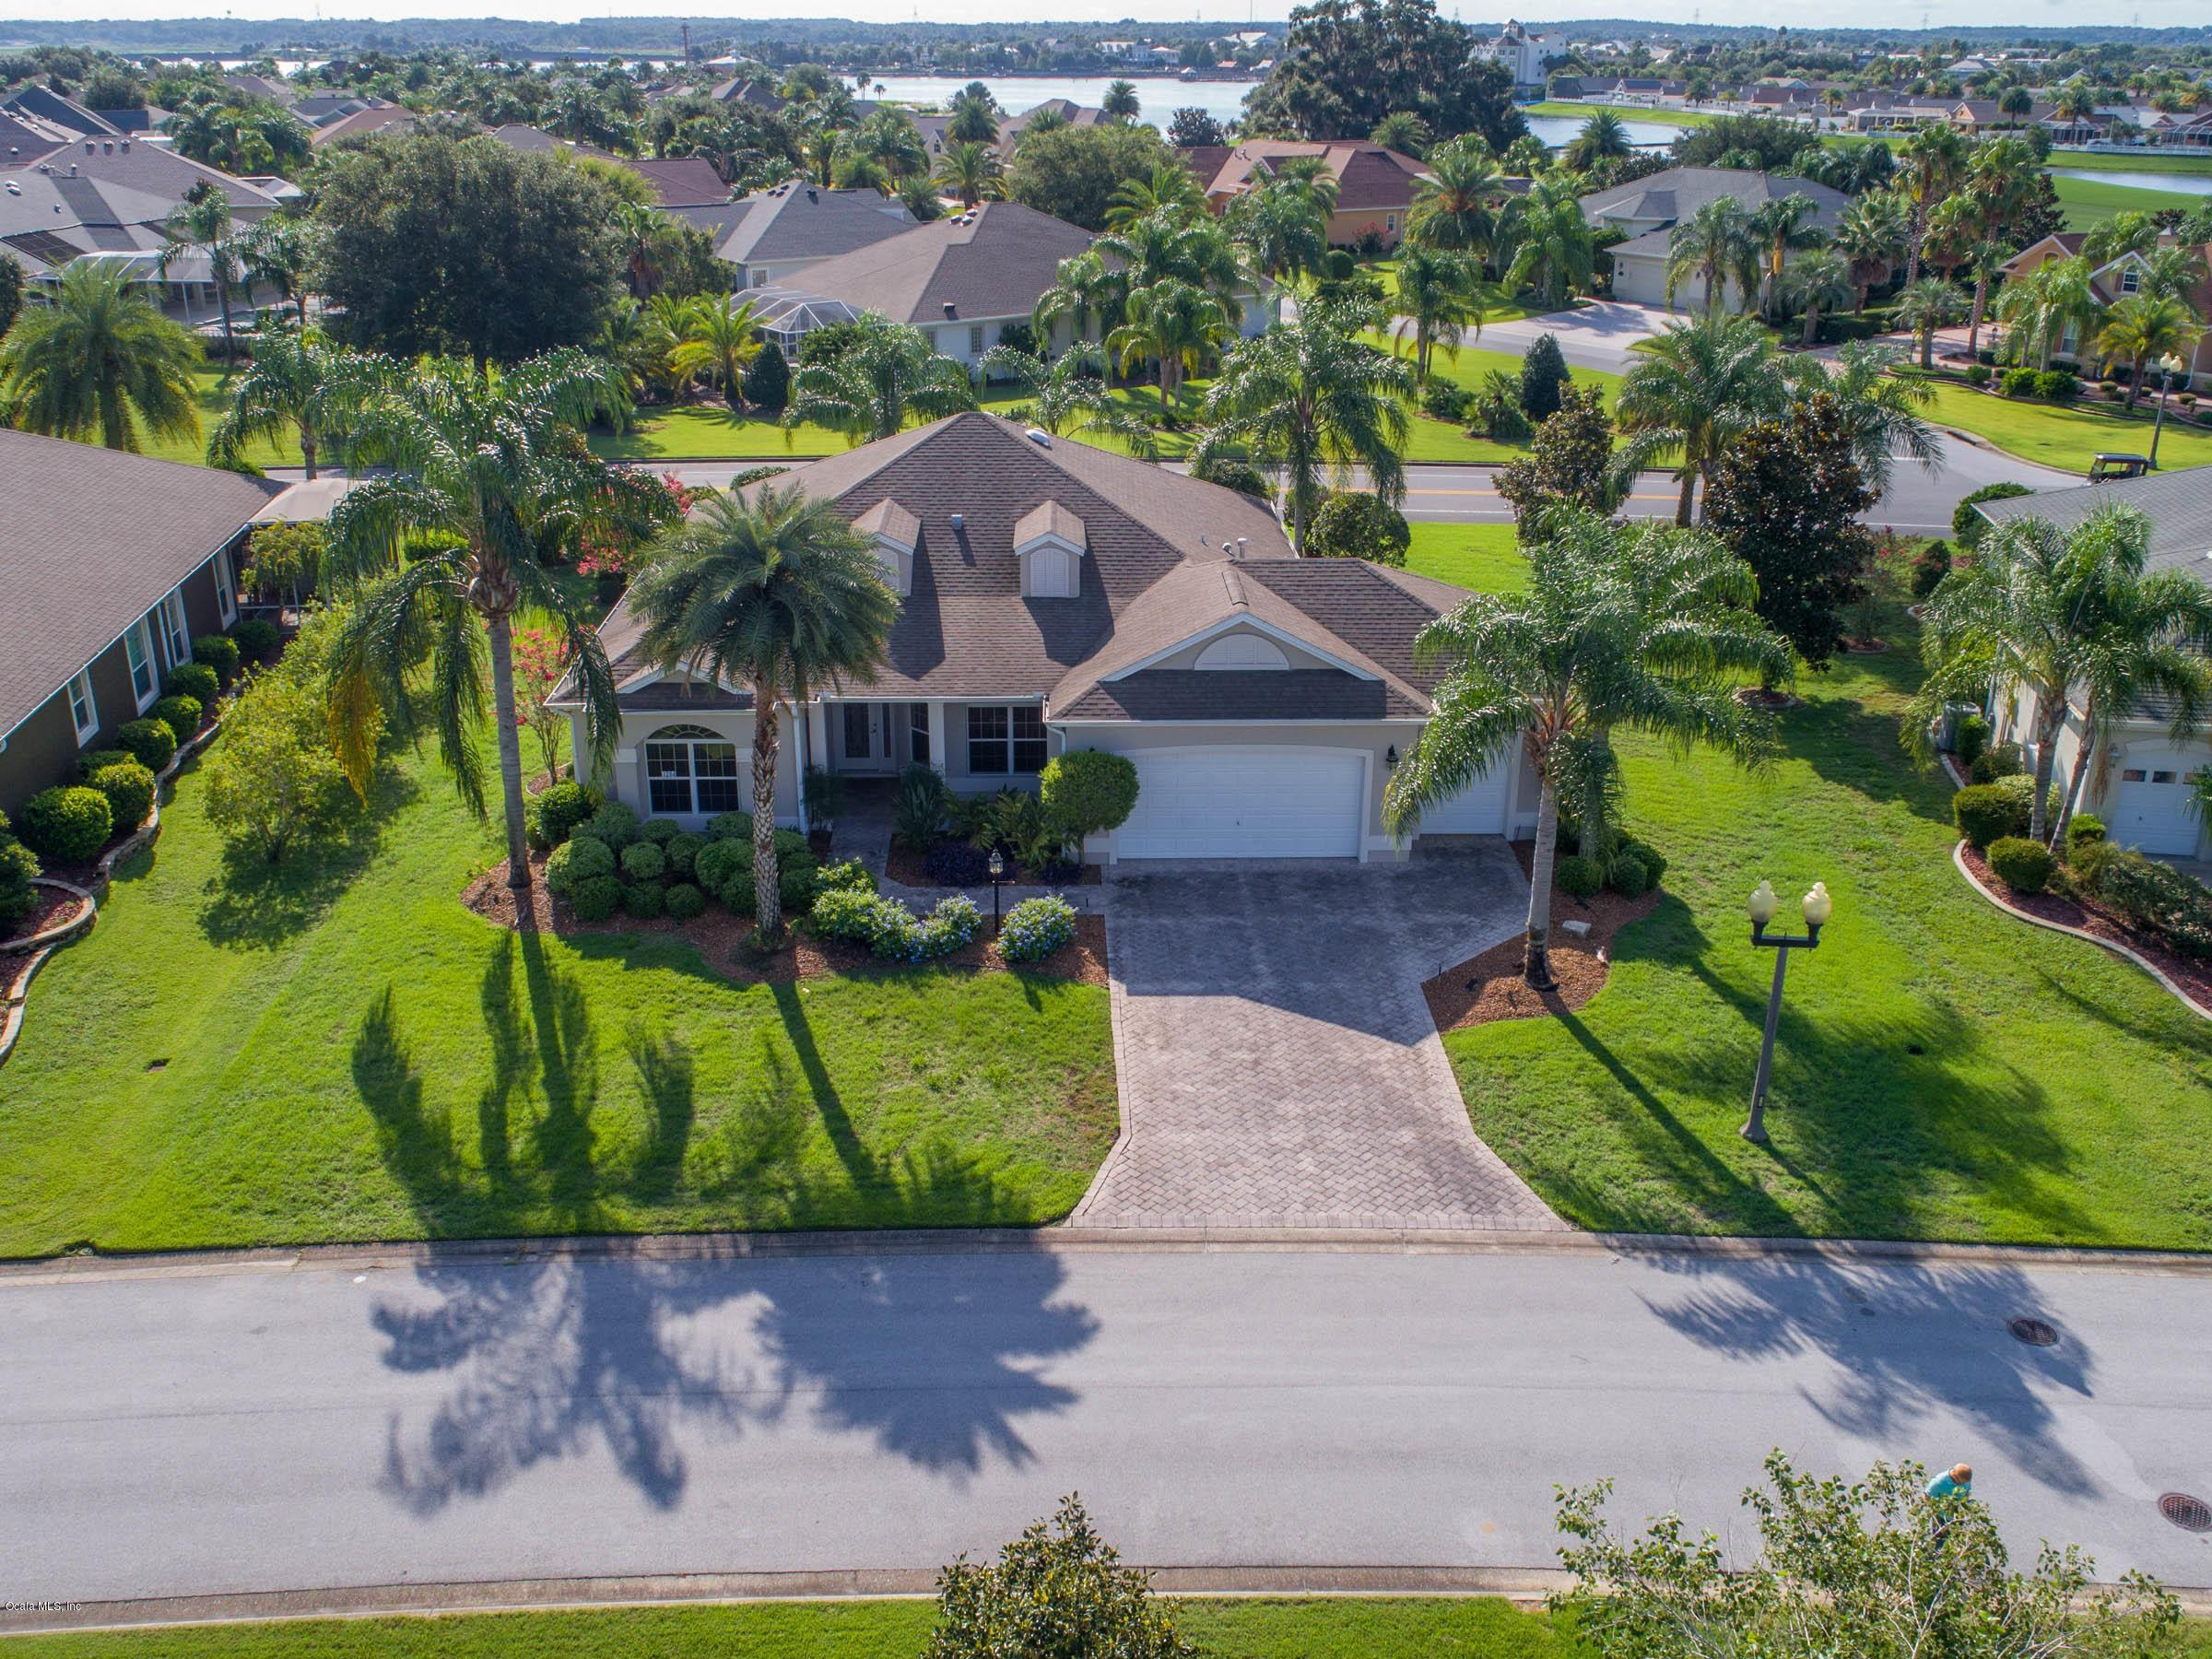 1284 Blease Loop, The Villages, Florida